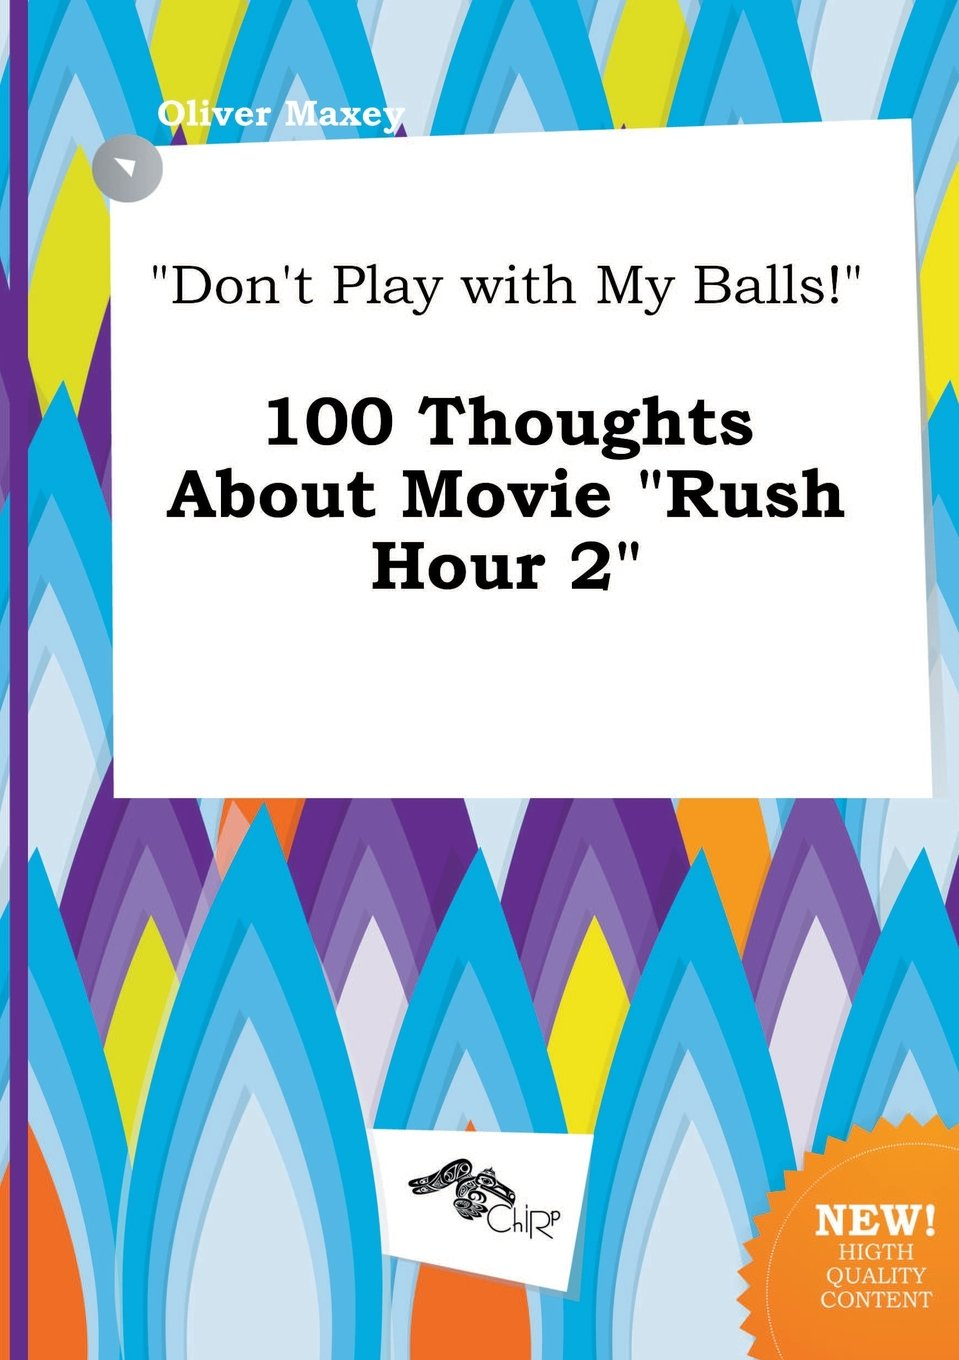 Don't Play with My Balls! 100 Thoughts about Movie Rush Hour